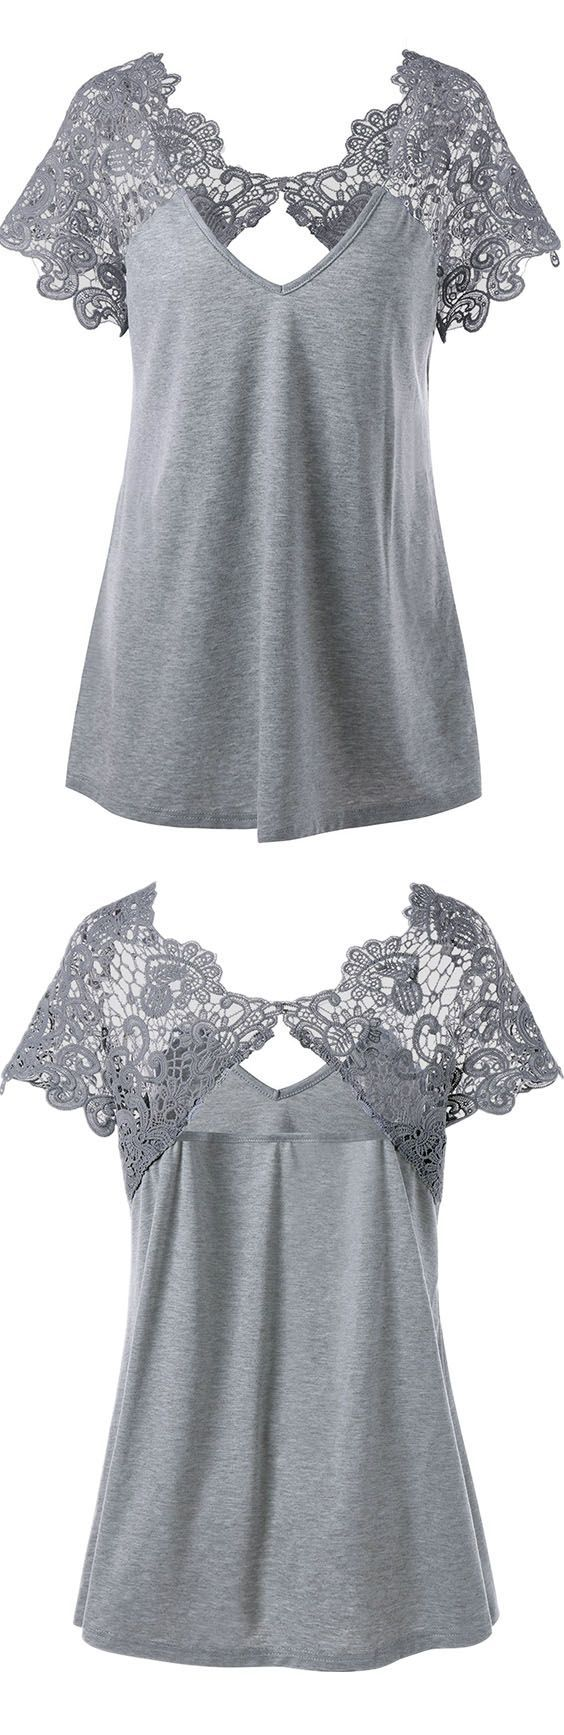 $12.93 Plus Size Cutwork Lace Trim T-Shirt – Gray